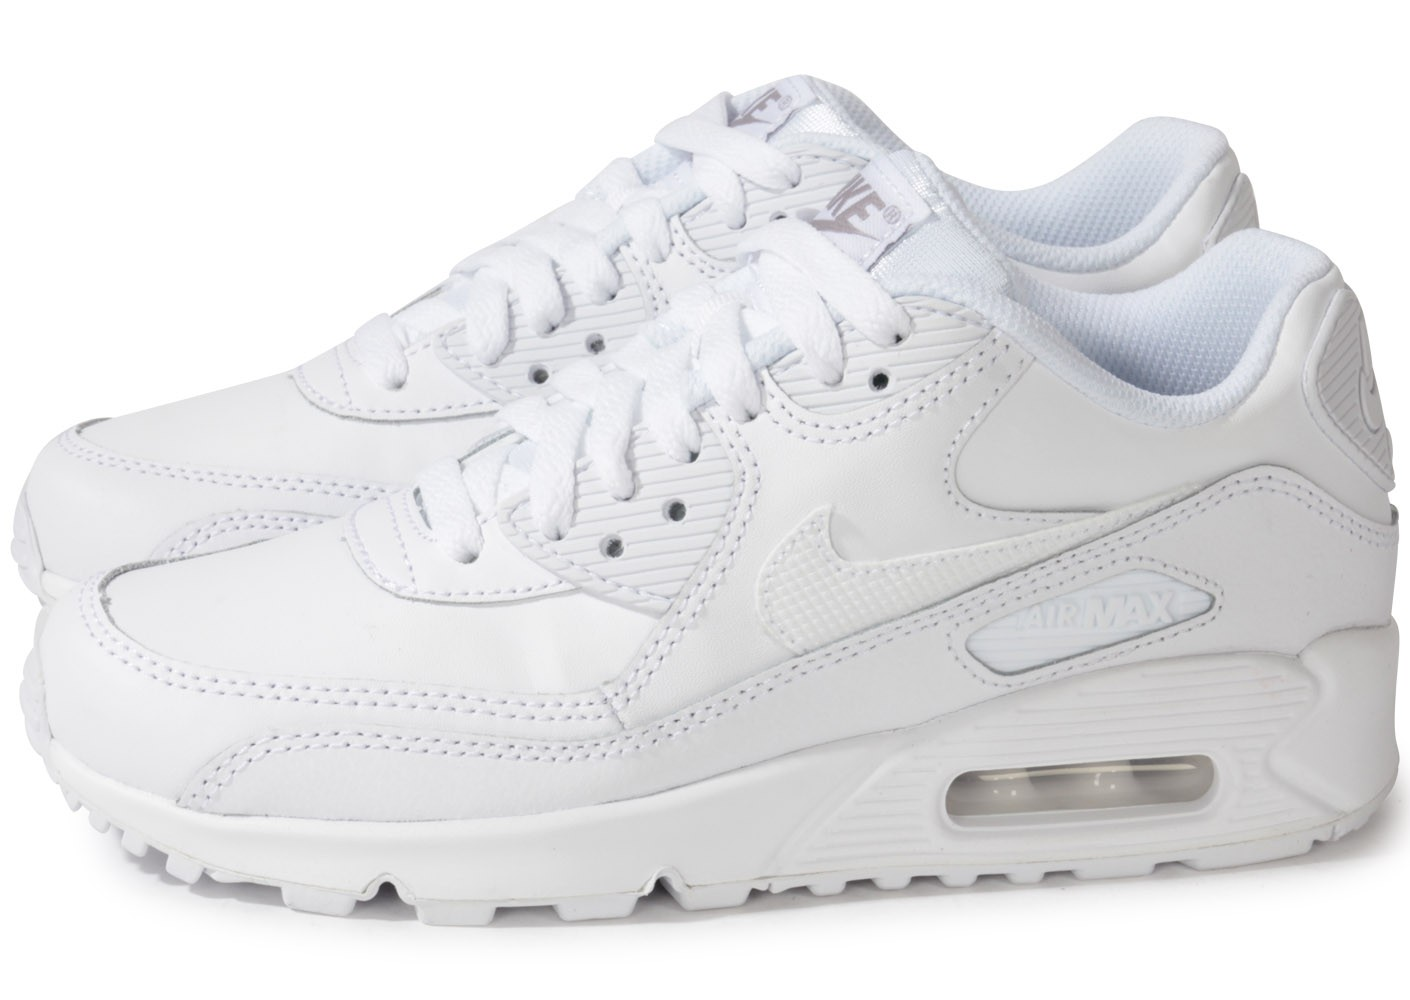 differently 96ef7 be187 Alainhemet Nike Air Cher Pas 90 Max Chaussures De ve Achat Femme OTXikPZu